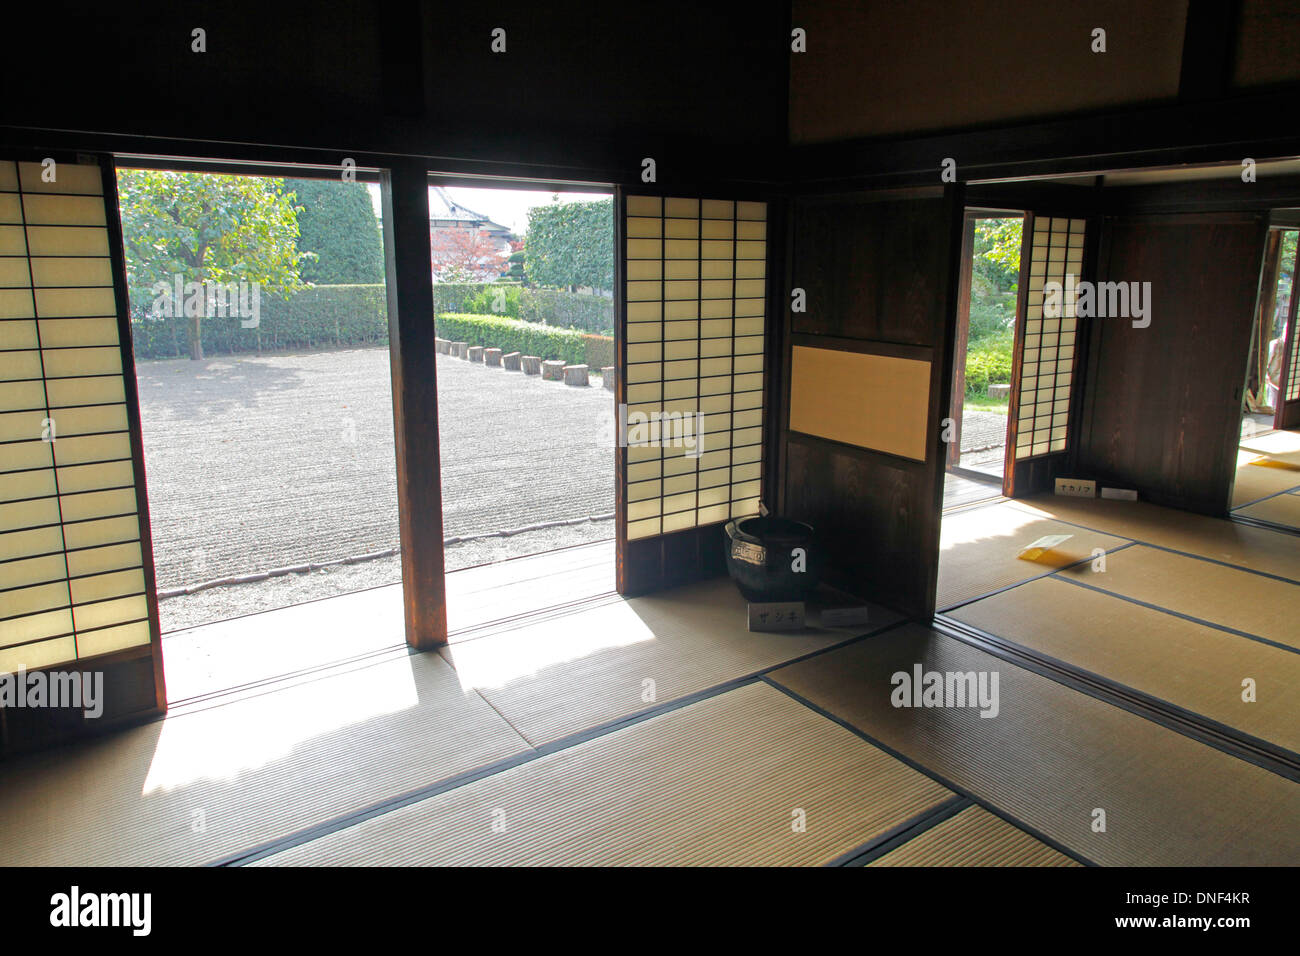 Interior of old Japanese house Tokyo Japan Stock Photo: 64871851 - on nature architecture design, church architecture design, school architecture design, landscape architecture design, building architecture design, water architecture design, art architecture design, home architecture design, windows architecture design, garden architecture design, beach architecture design,